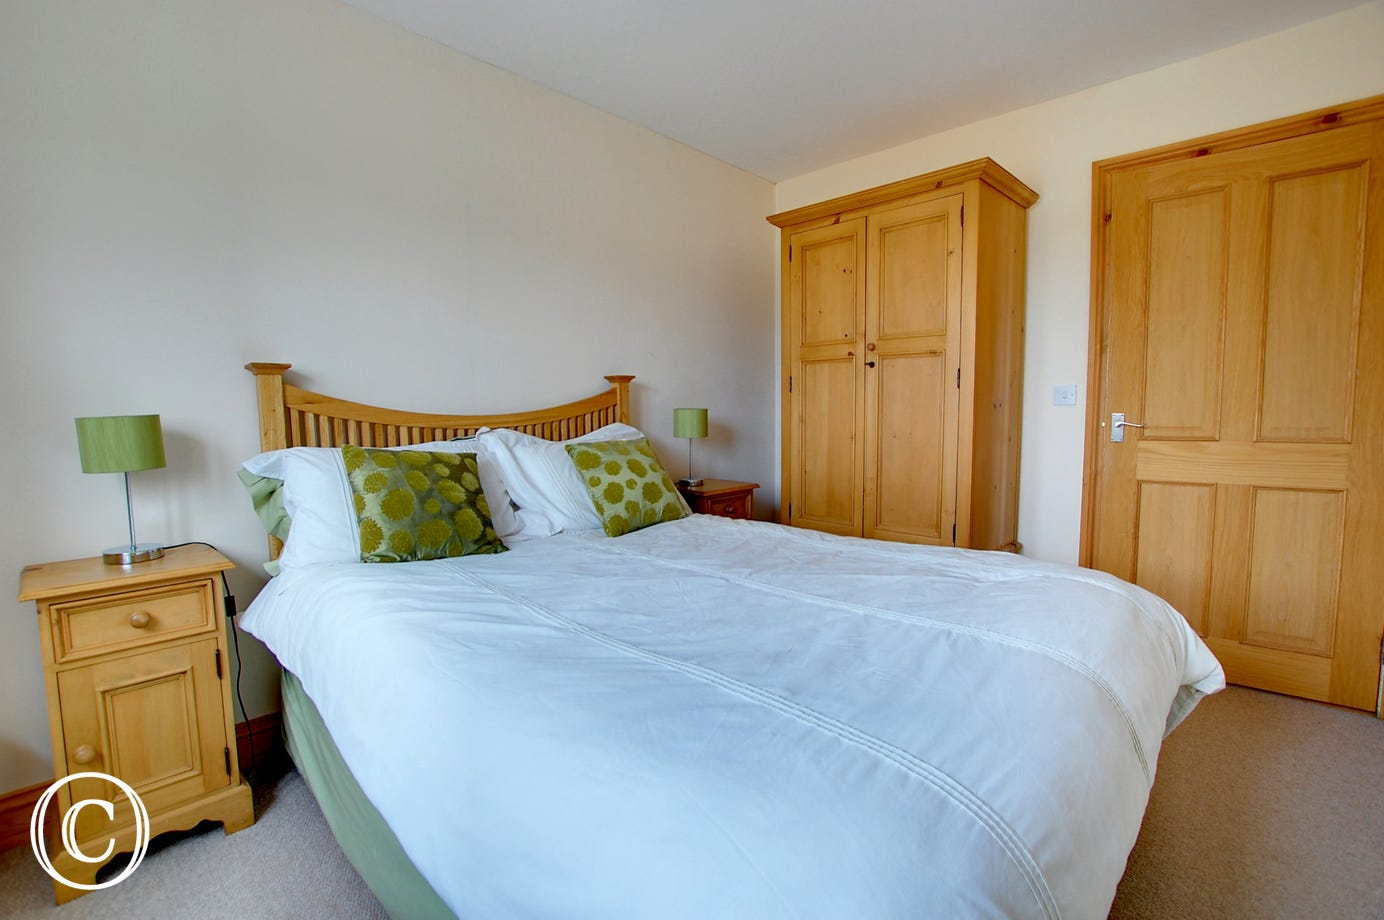 Another angle of bedroom 3 showing the beautiful soft furnishings and storage